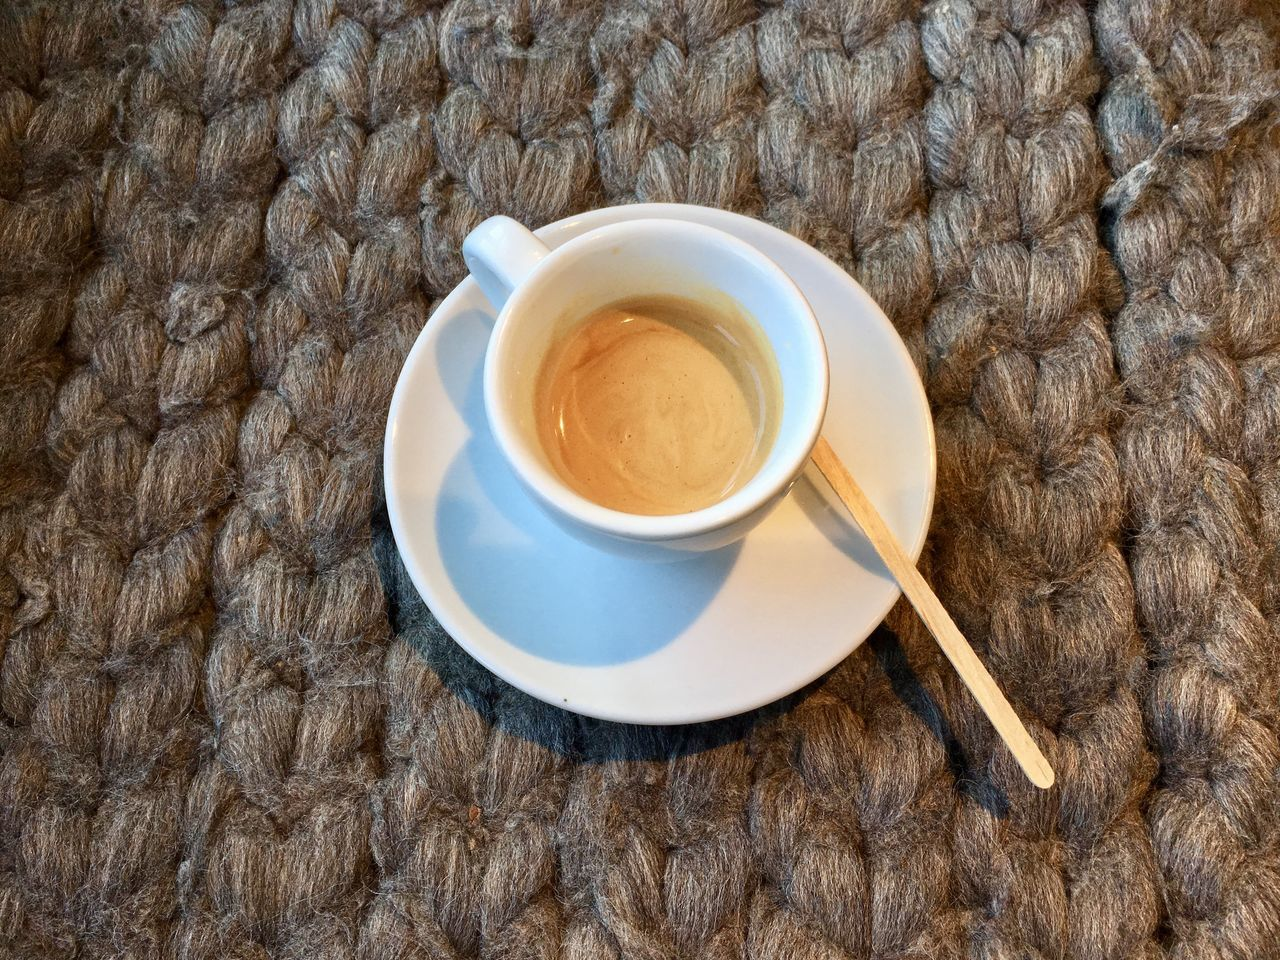 drink, coffee cup, refreshment, food and drink, coffee - drink, indoors, high angle view, table, no people, saucer, directly above, freshness, close-up, day